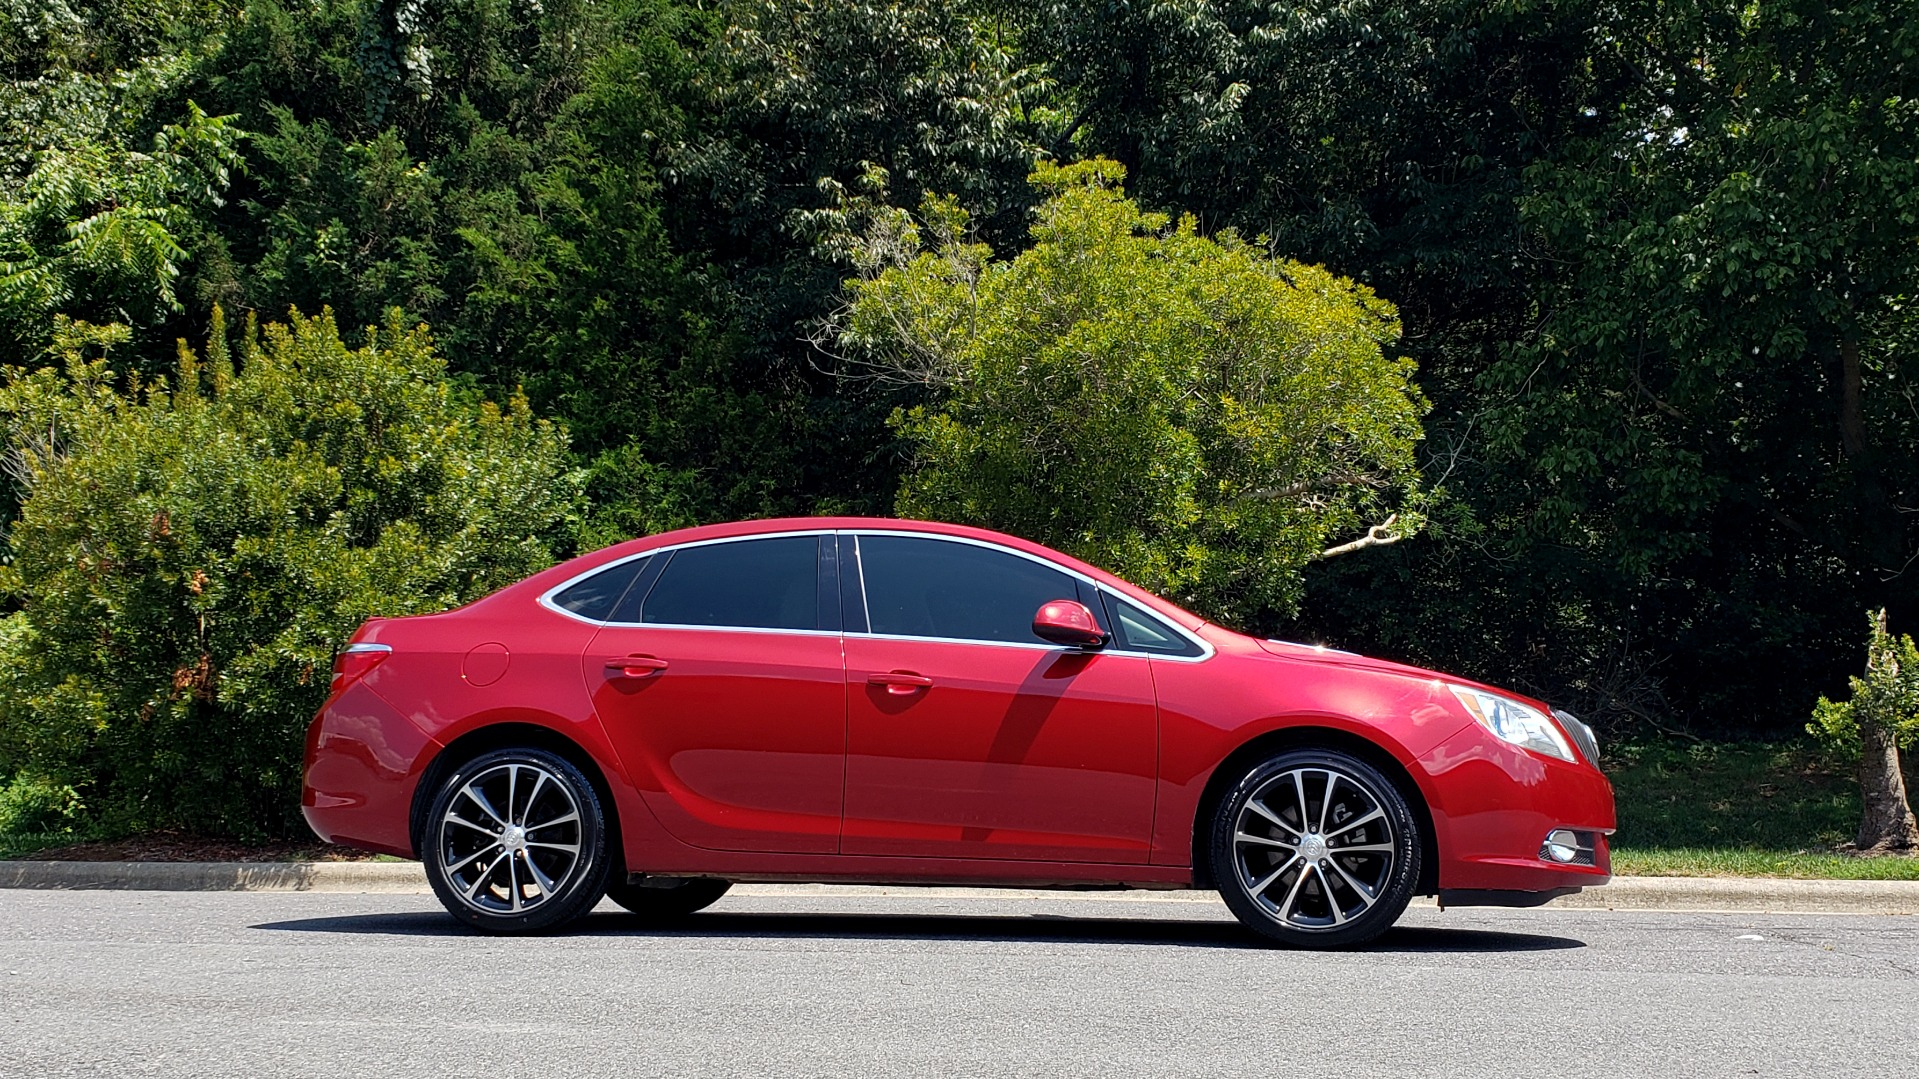 Used 2016 Buick VERANO SPORT TOURING / SUNROOF / HTD STS / 18IN WHEELS / REARVIEW for sale Sold at Formula Imports in Charlotte NC 28227 6